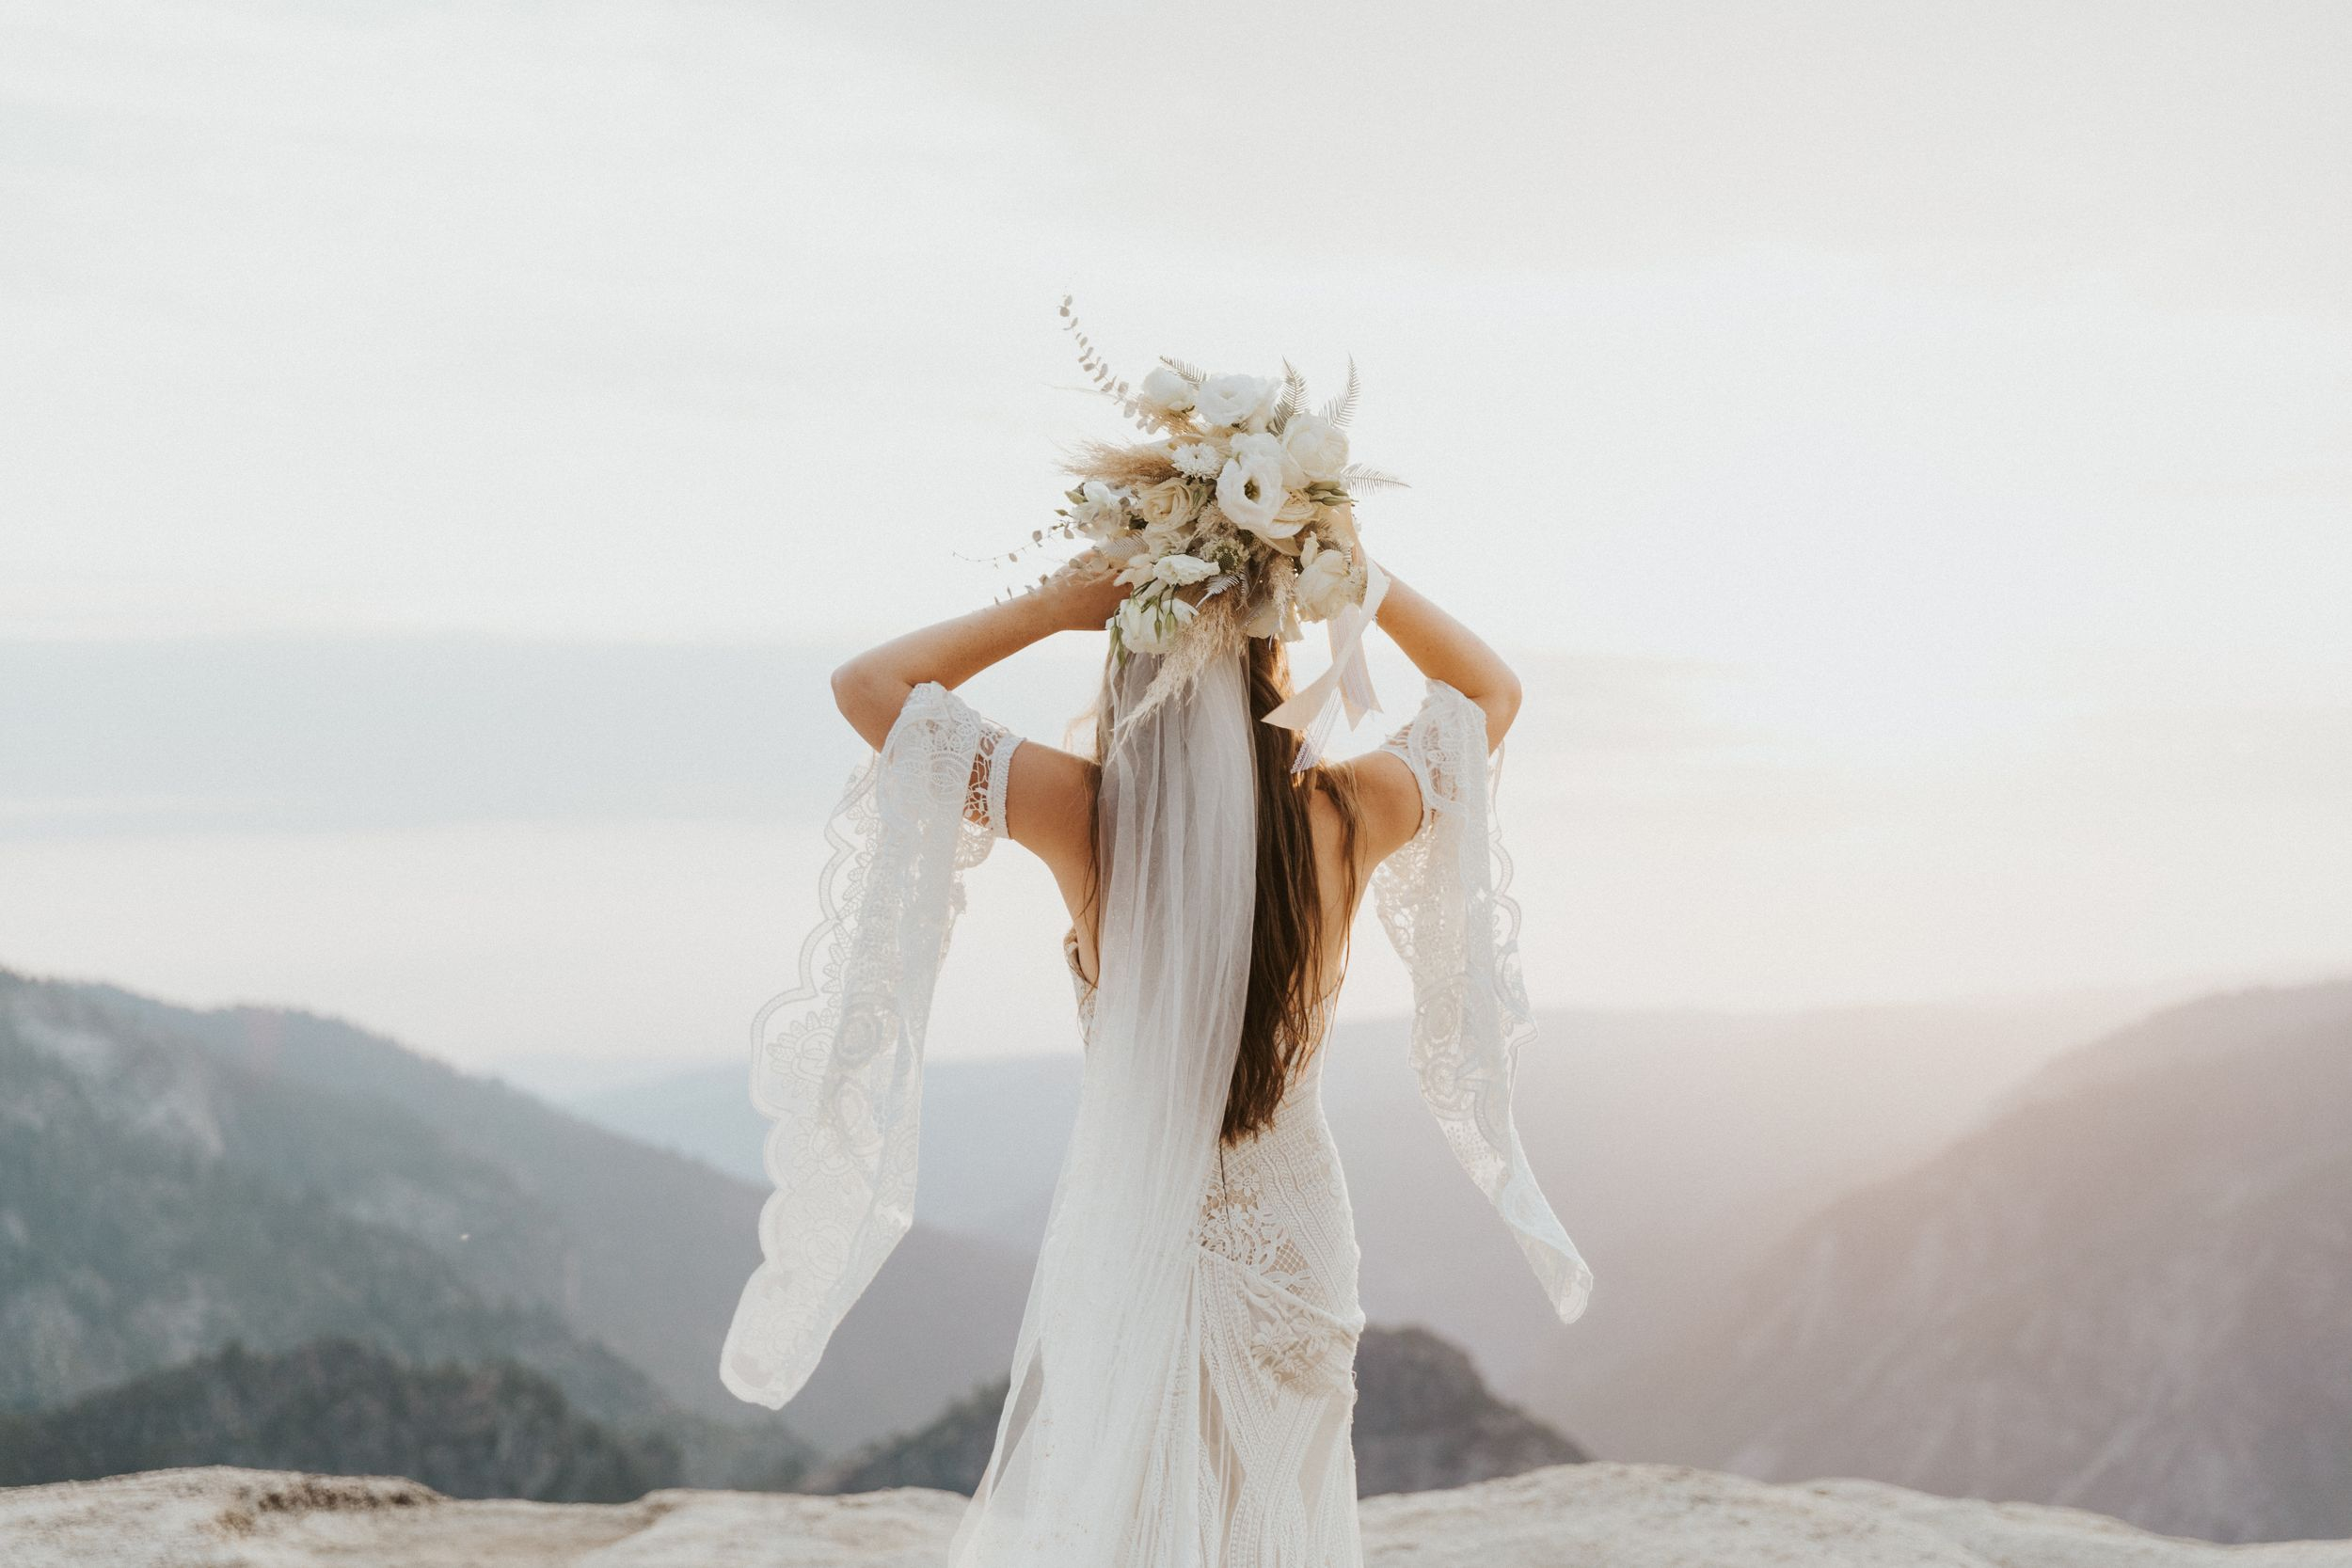 kendall aubrey photography and videography bay area california destination elopements bend oregon boho vintage weddings